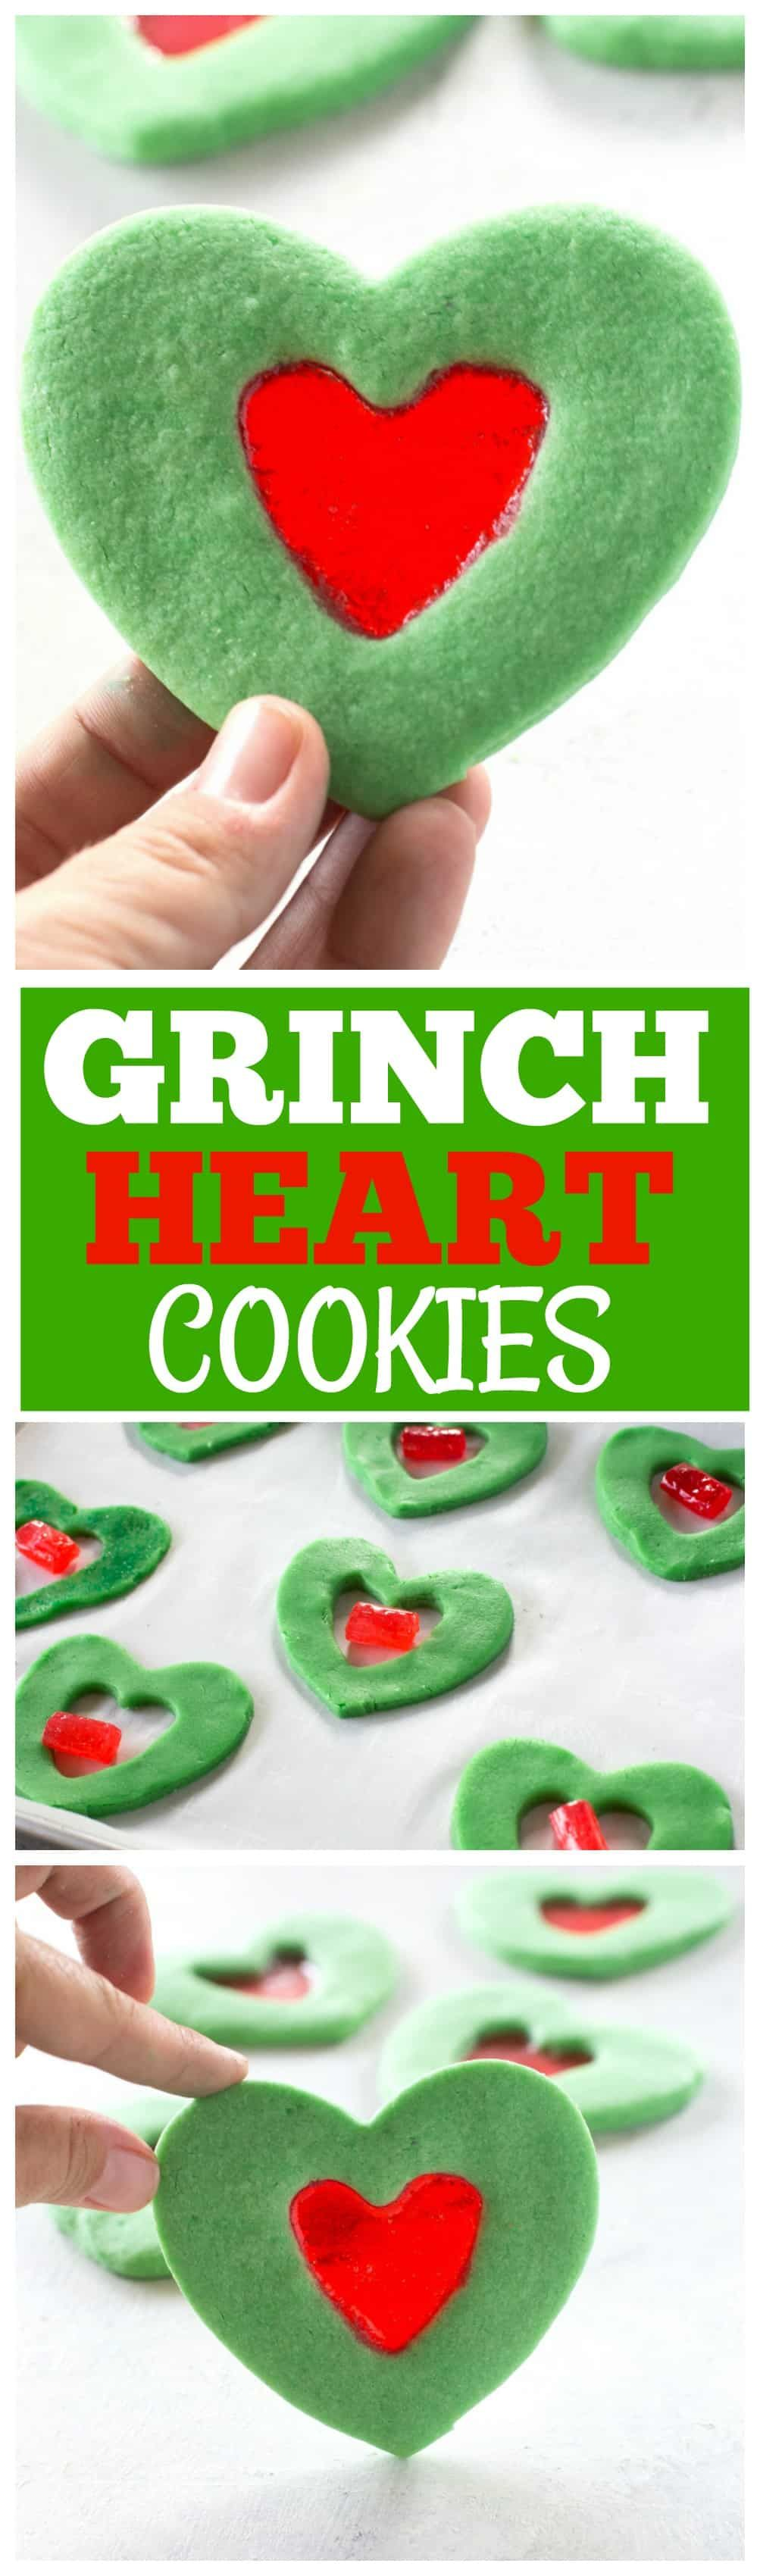 Heart These Grinch Heart Cookies are magical little treats that you can make at Christmas with your